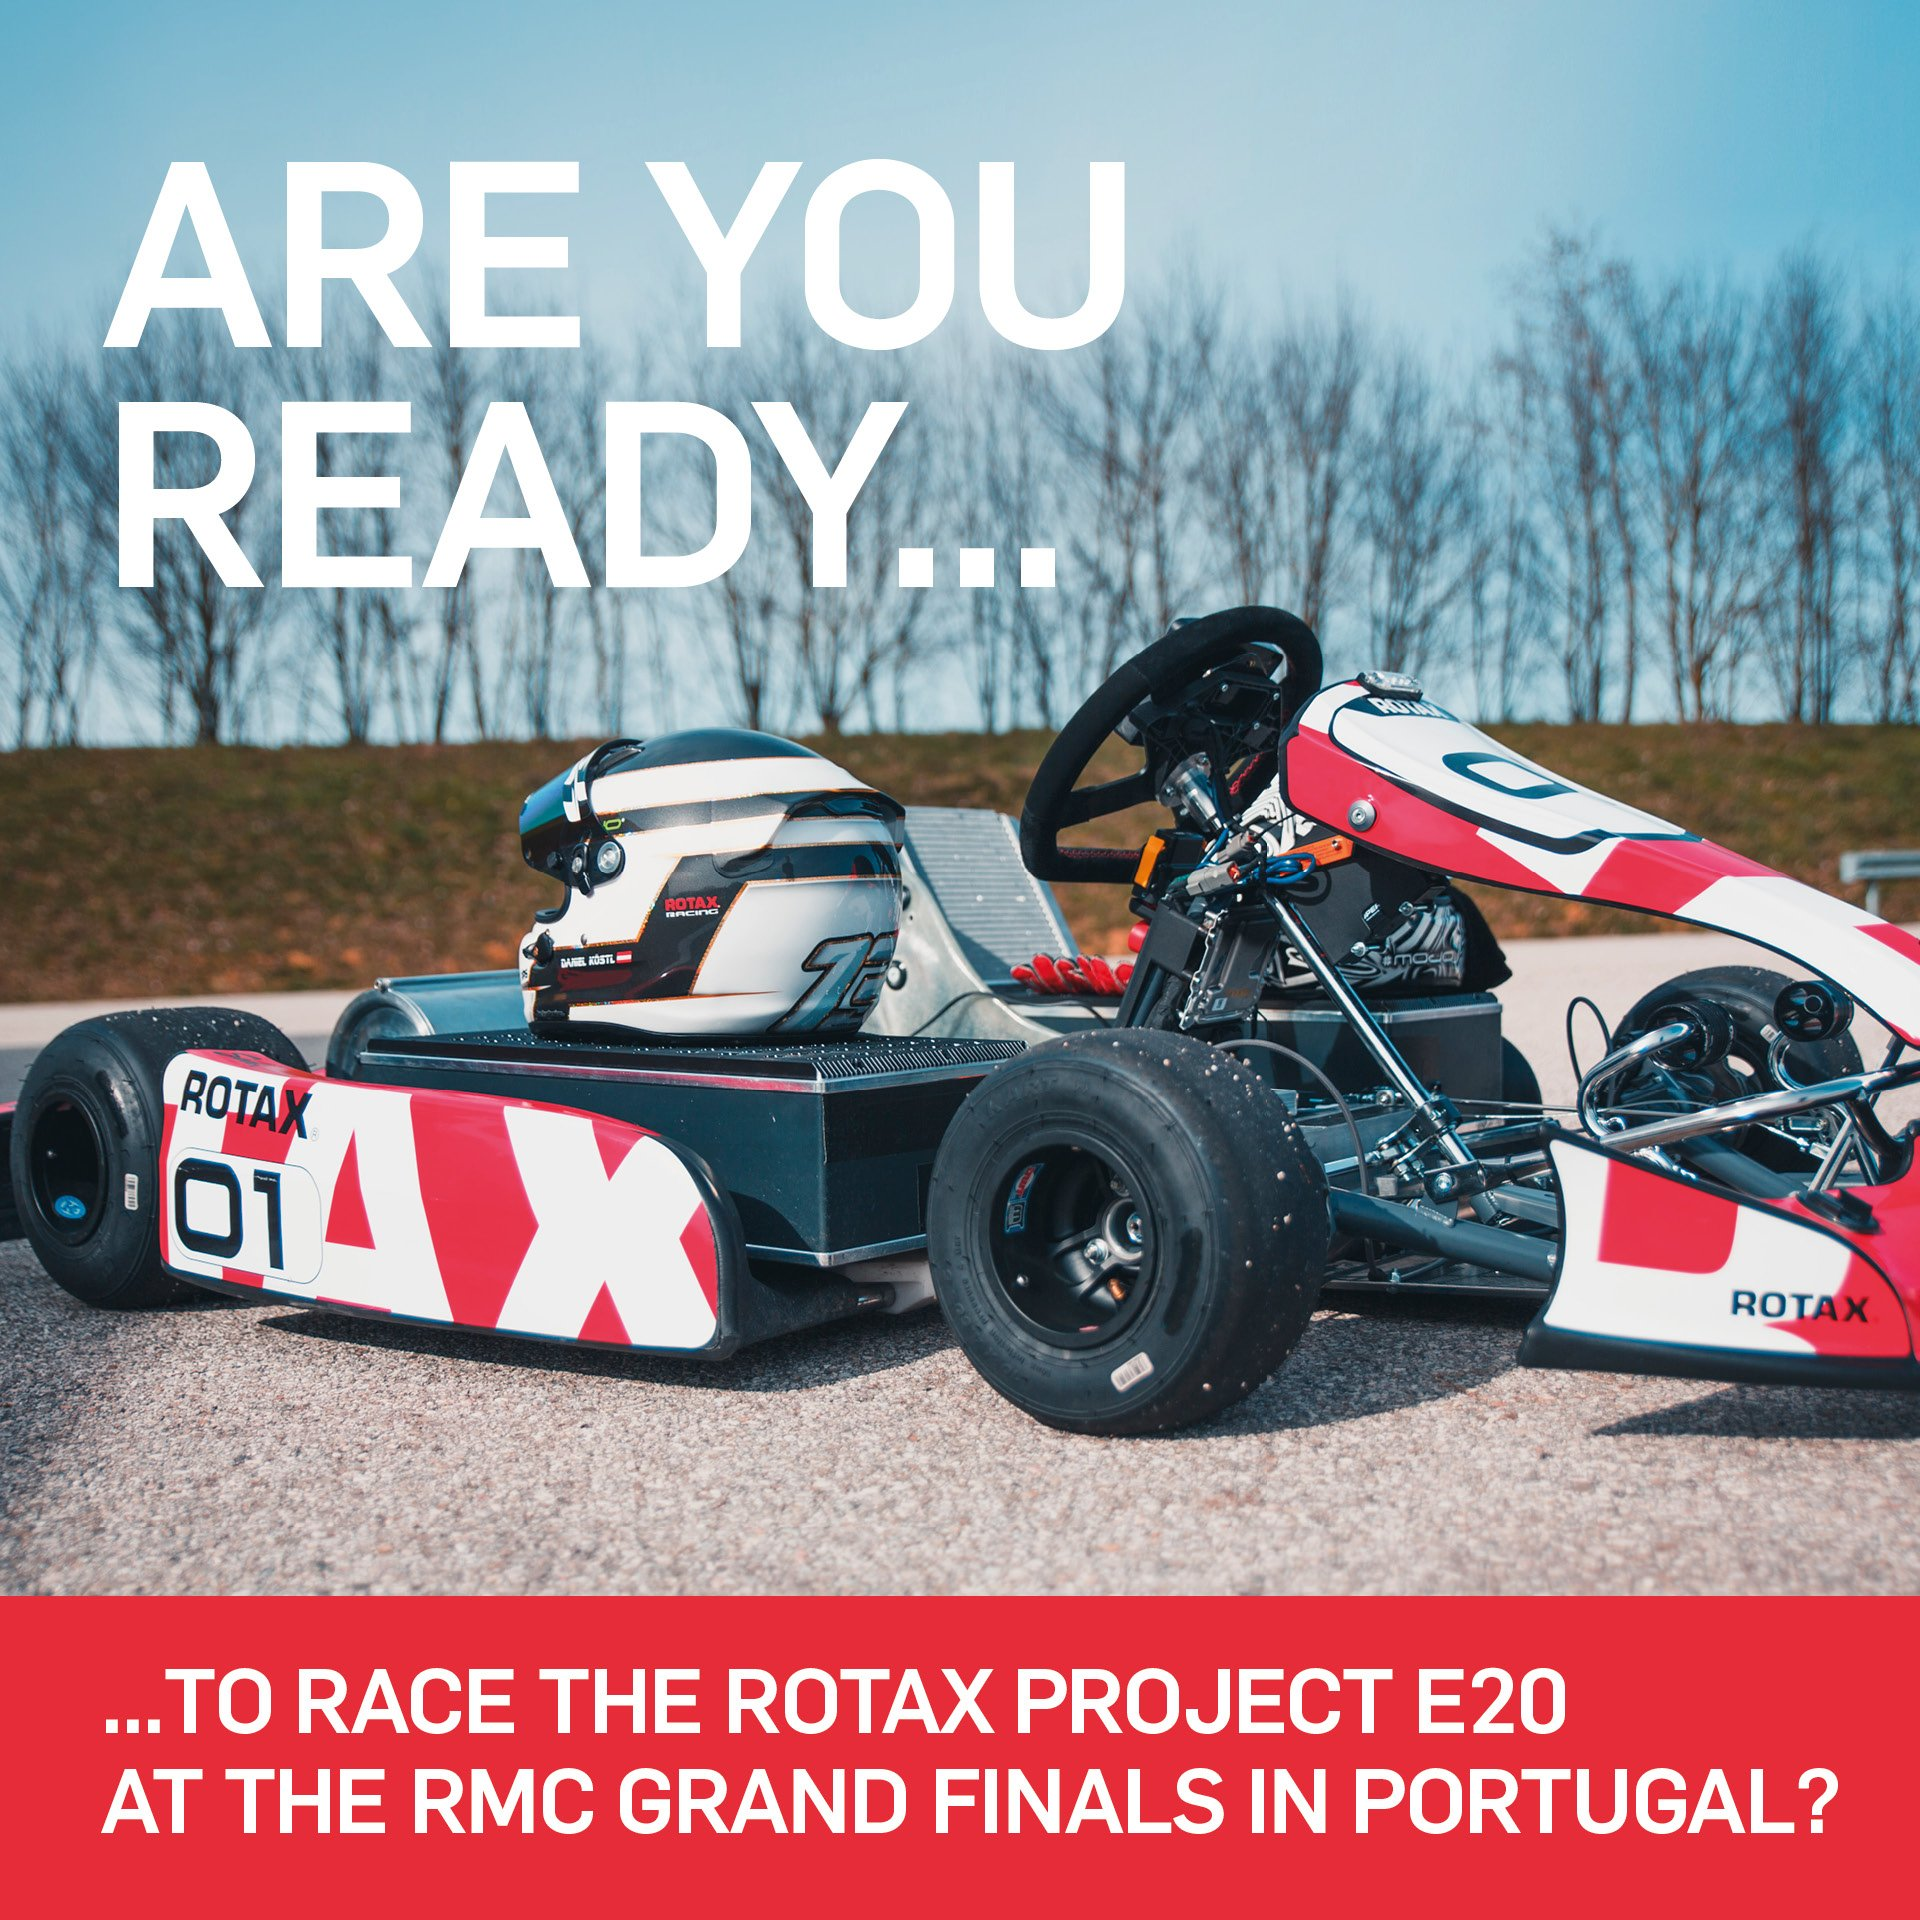 Are you ready for this? Race The Rotax Project E20 at the RMCGF in Portugal !